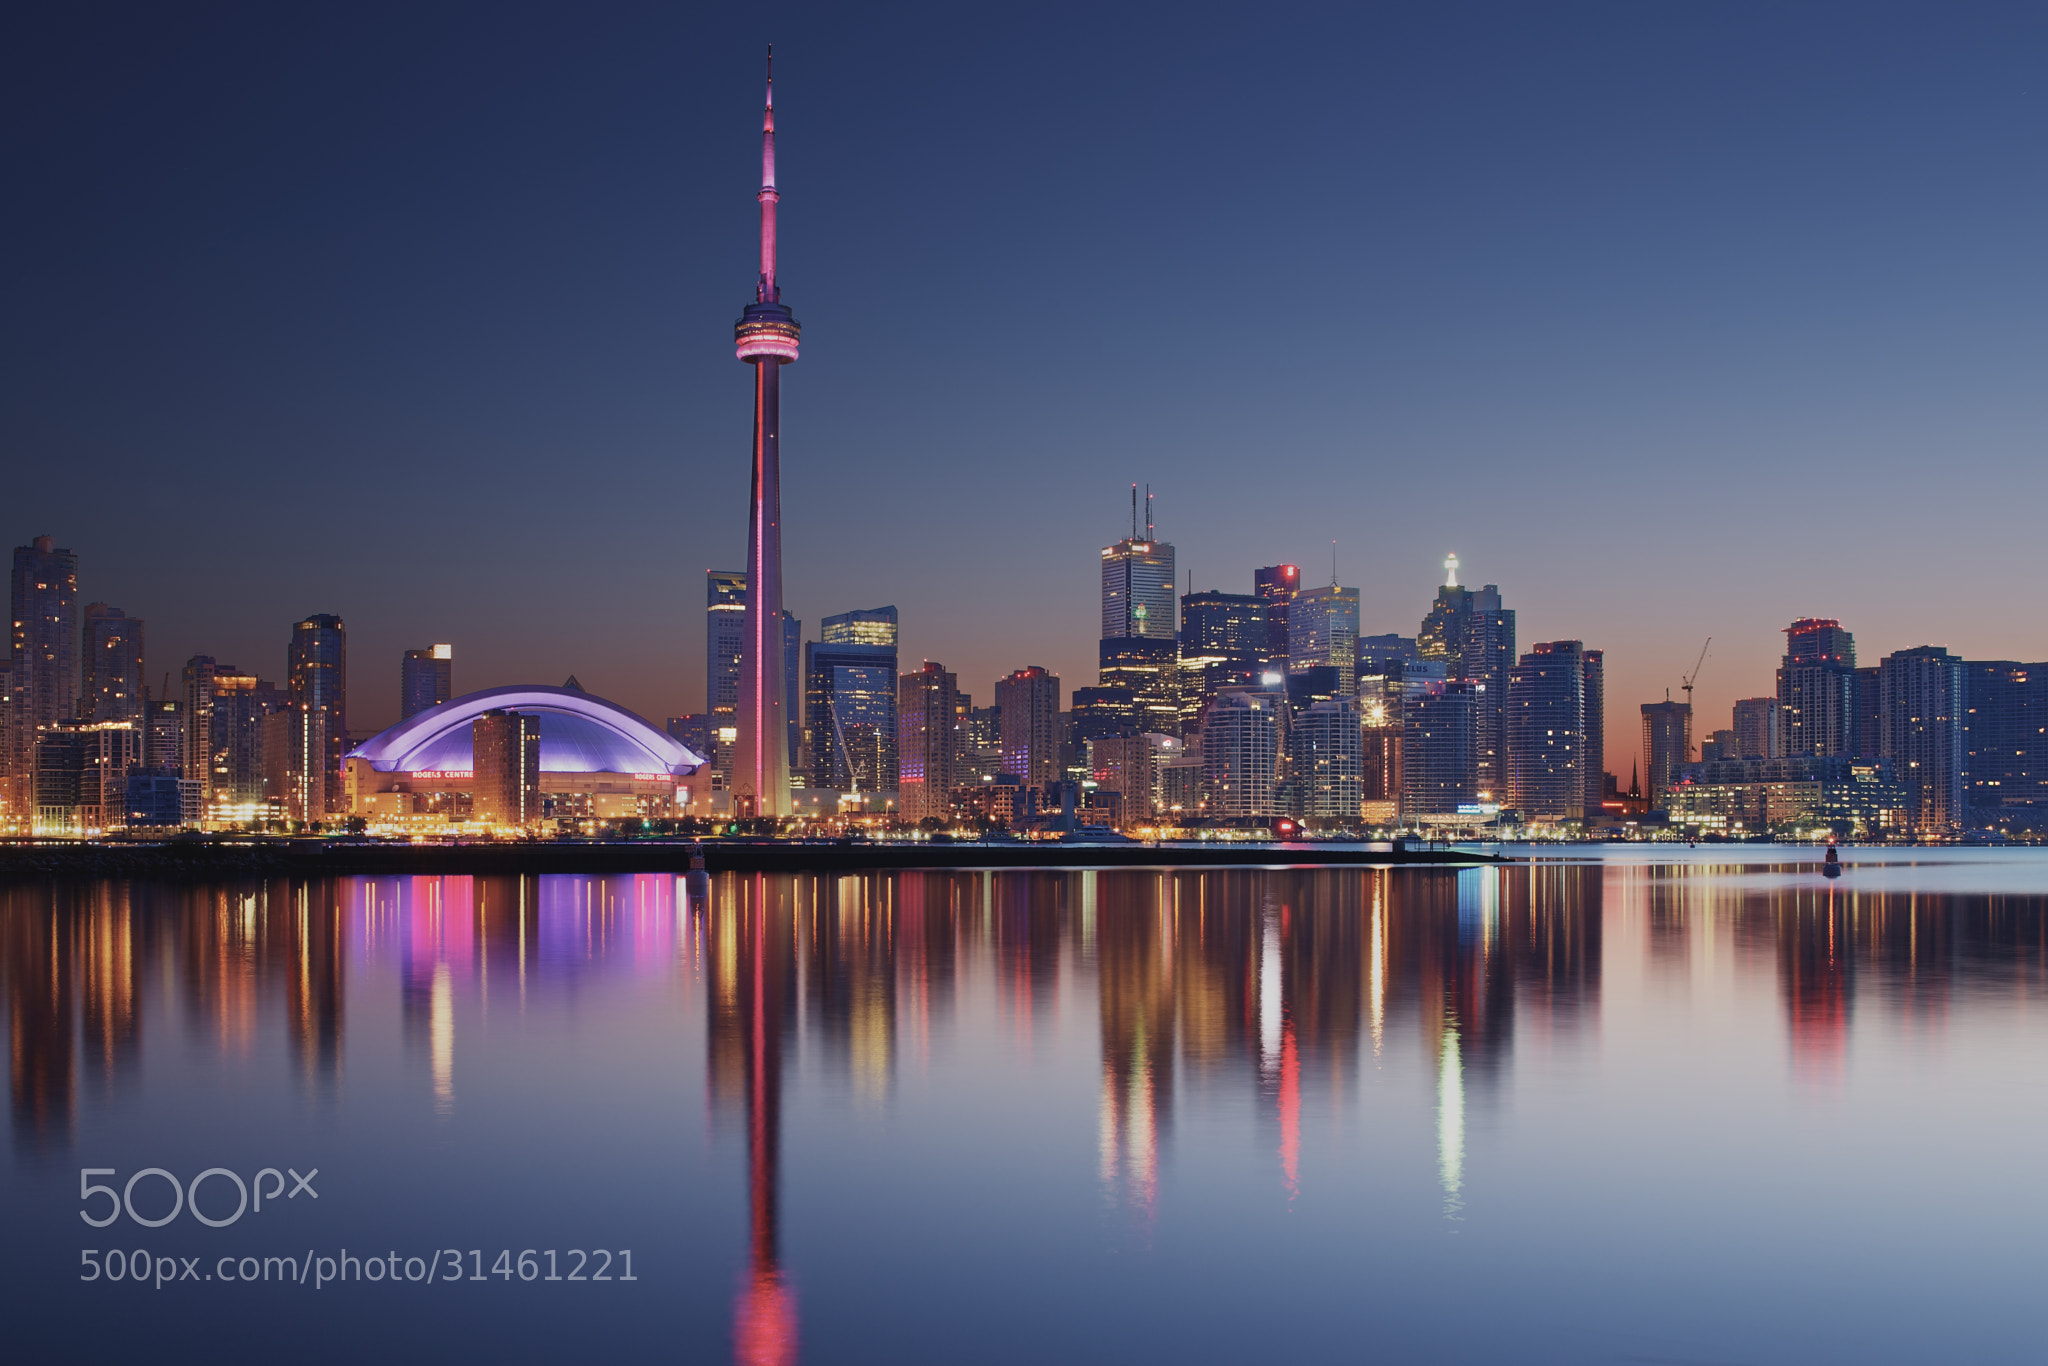 Photograph Toronto by Jan Zander on 500px